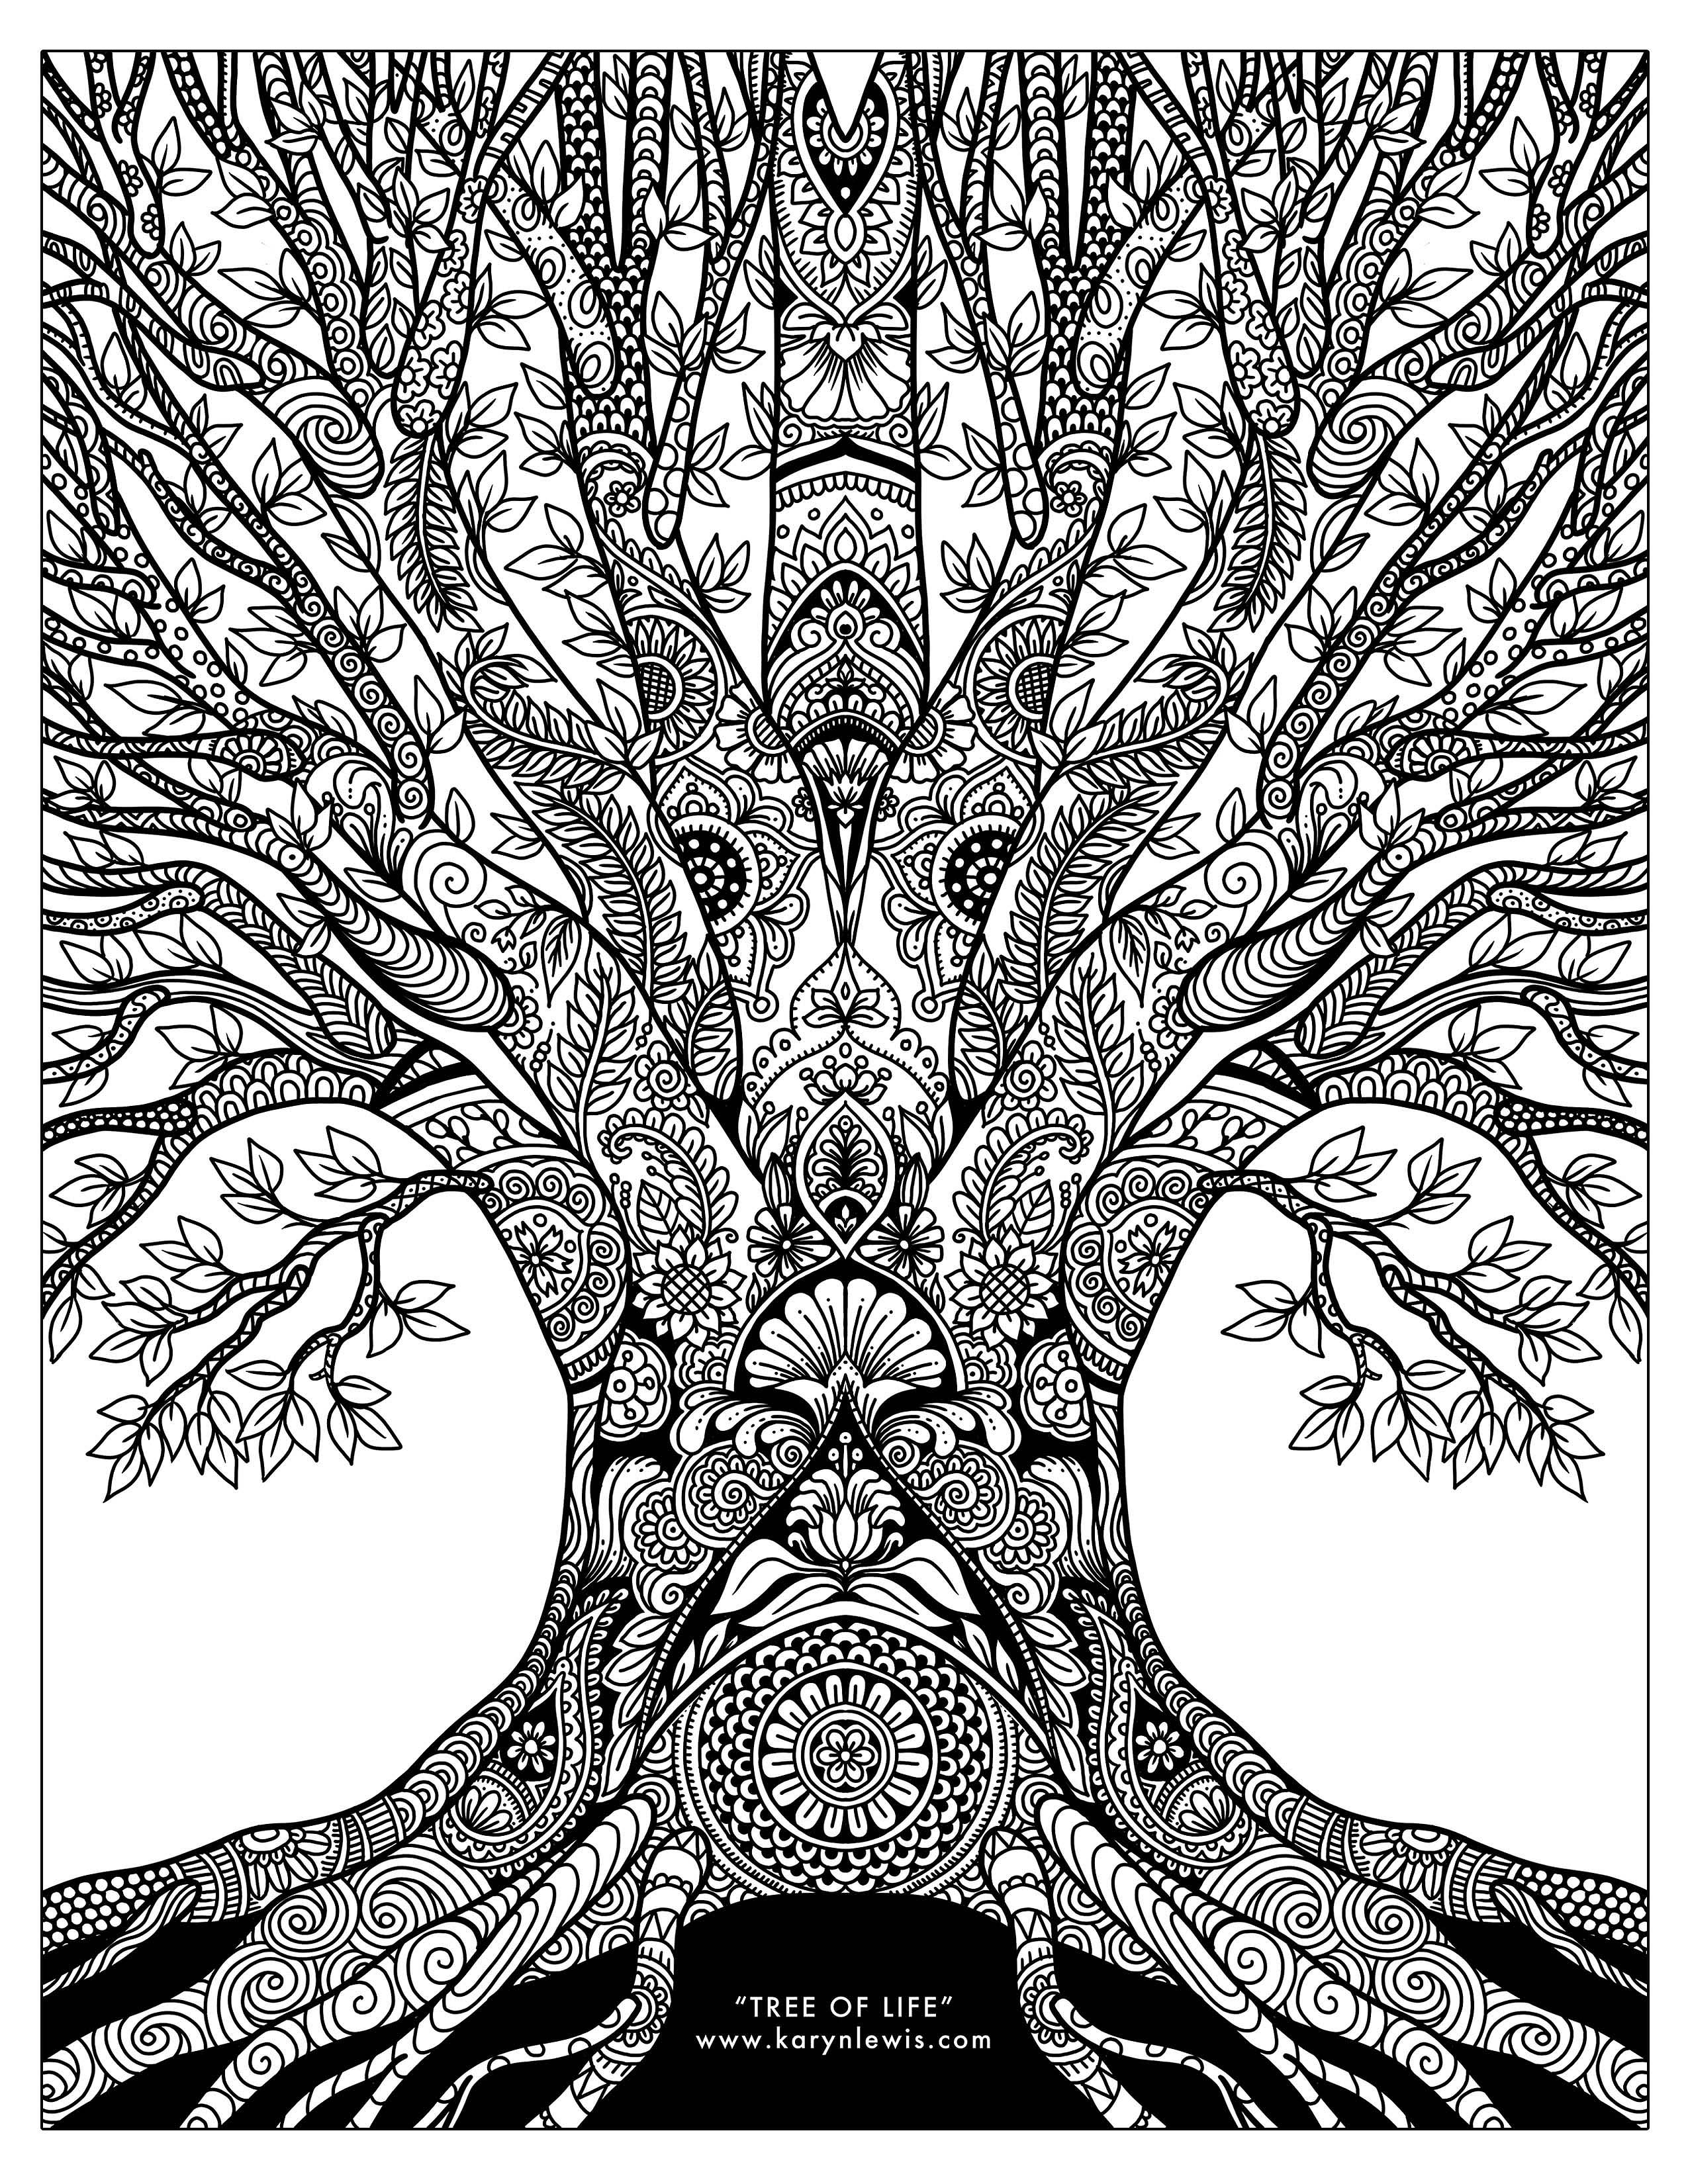 Tree Of Life Coloring Pages : coloring, pages, Life